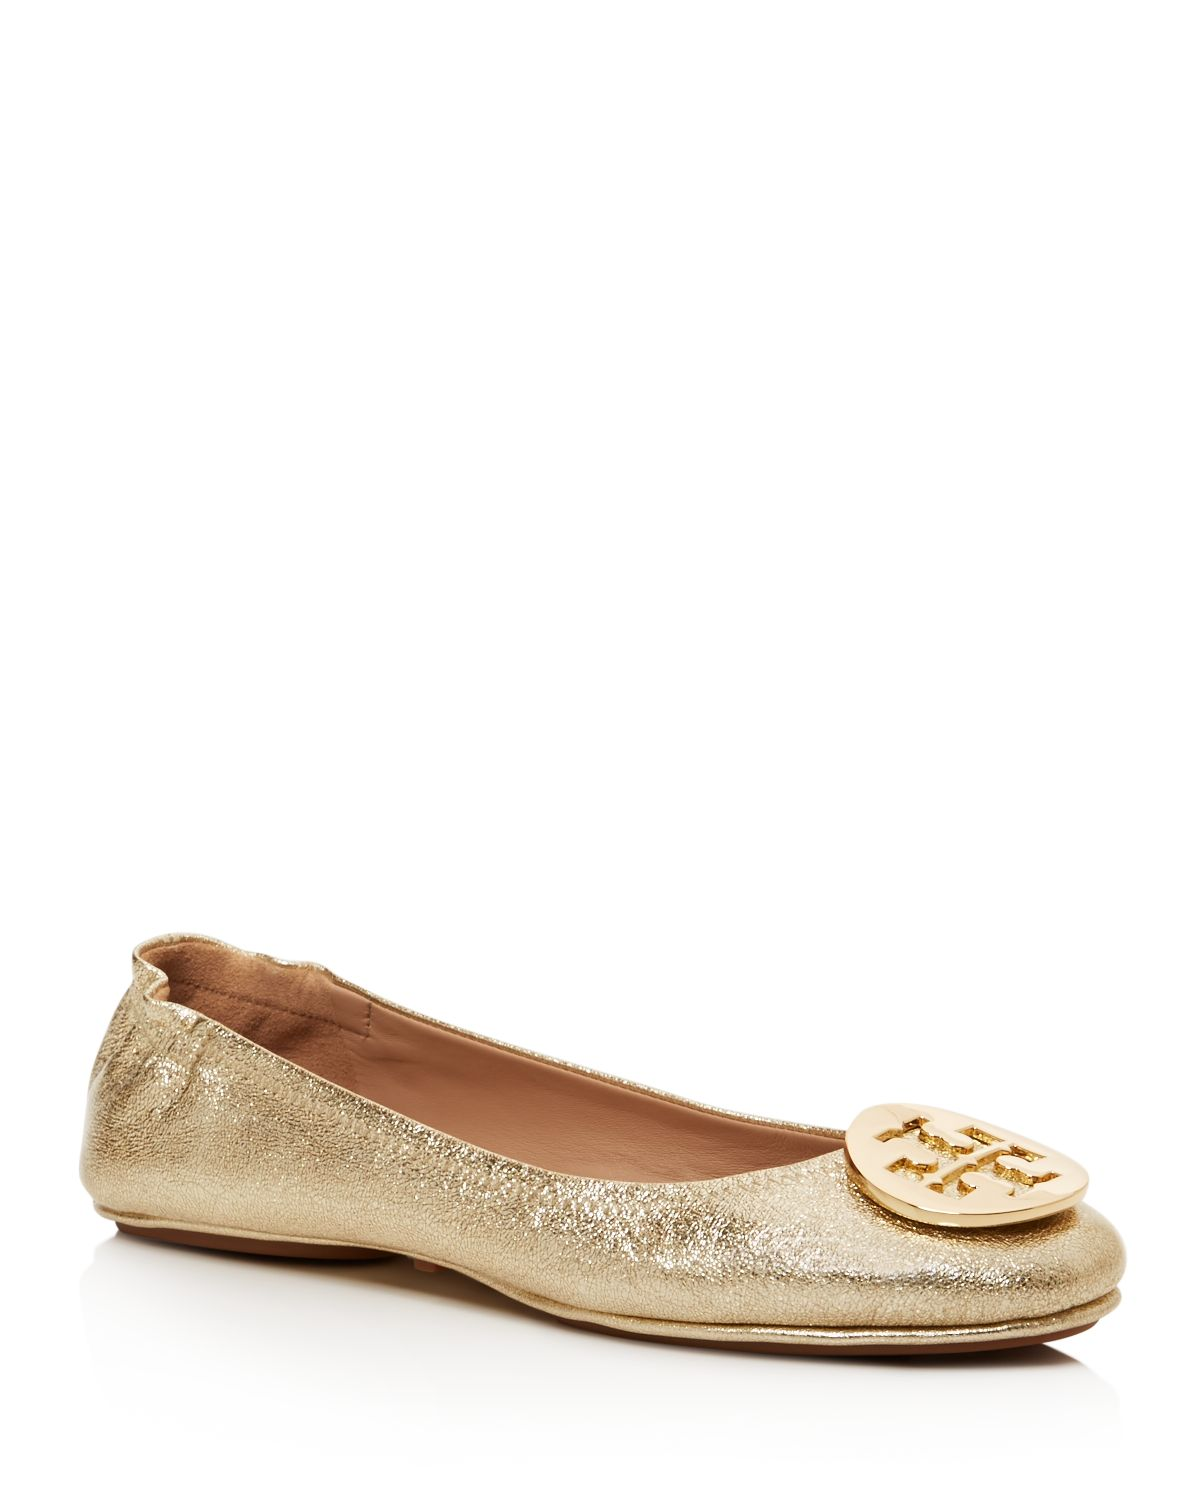 Women's Minnie Metallic Leather Travel Ballet Flats by Tory Burch